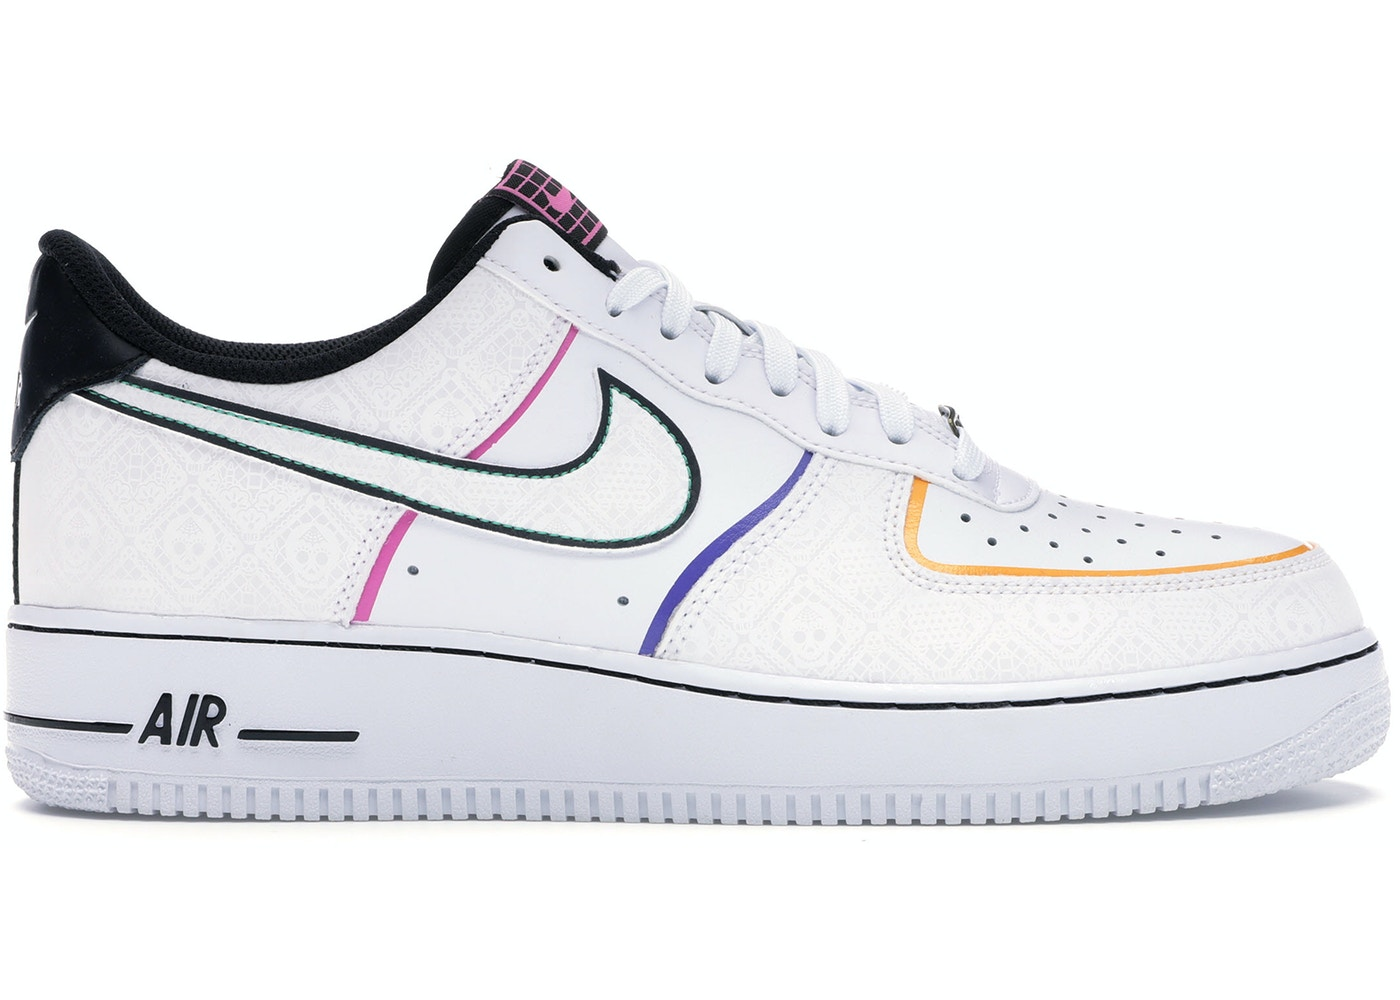 Nike Air Force 1 Shoes Total Sold Nike air force 1 low easter (w) (2020) uk5. stockx